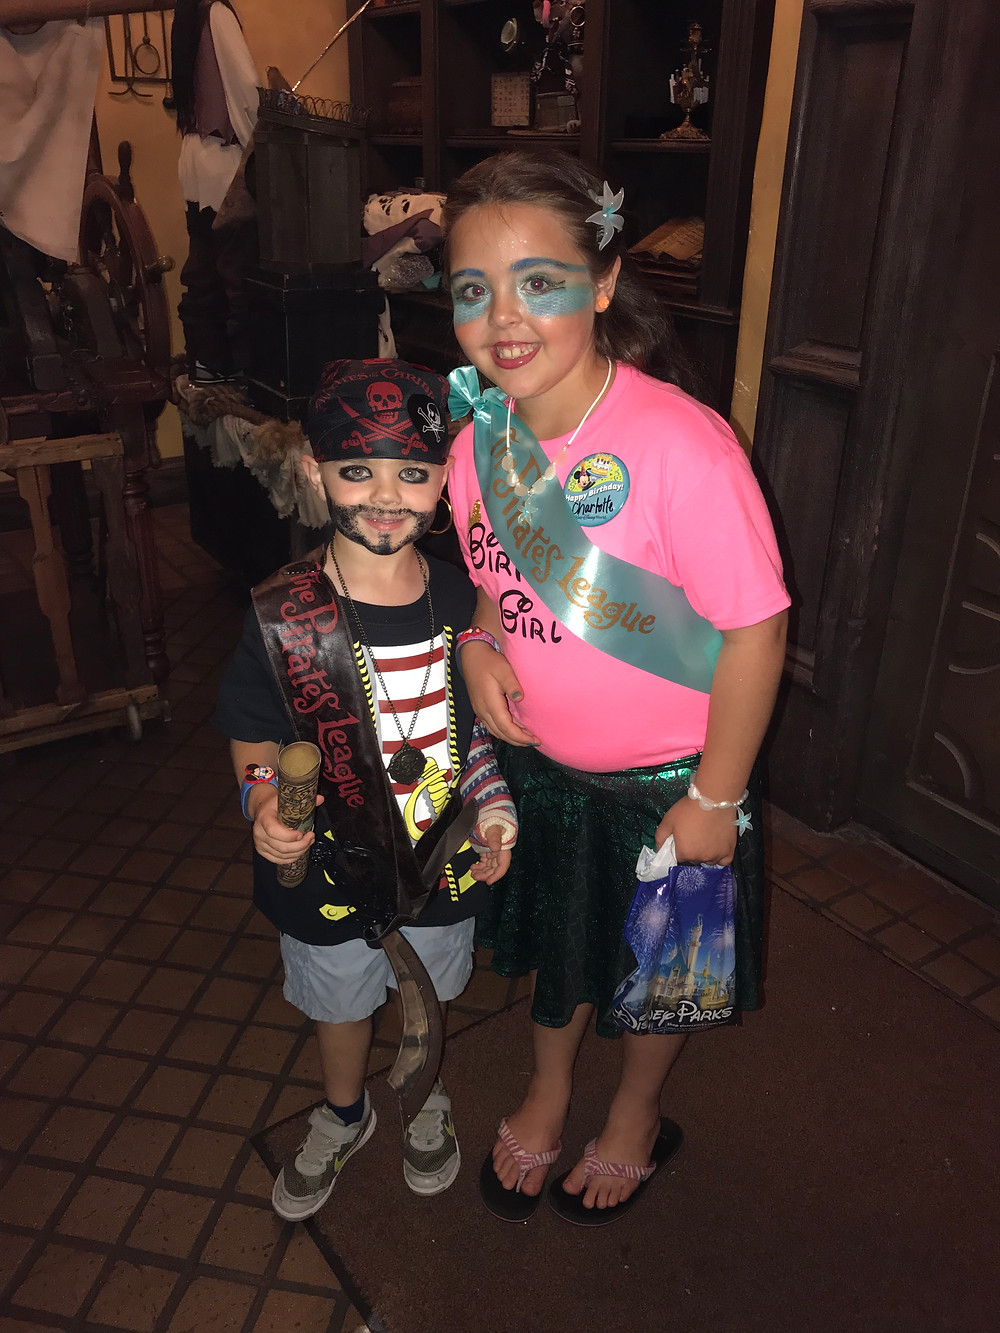 Pirate & Mermaid transformation